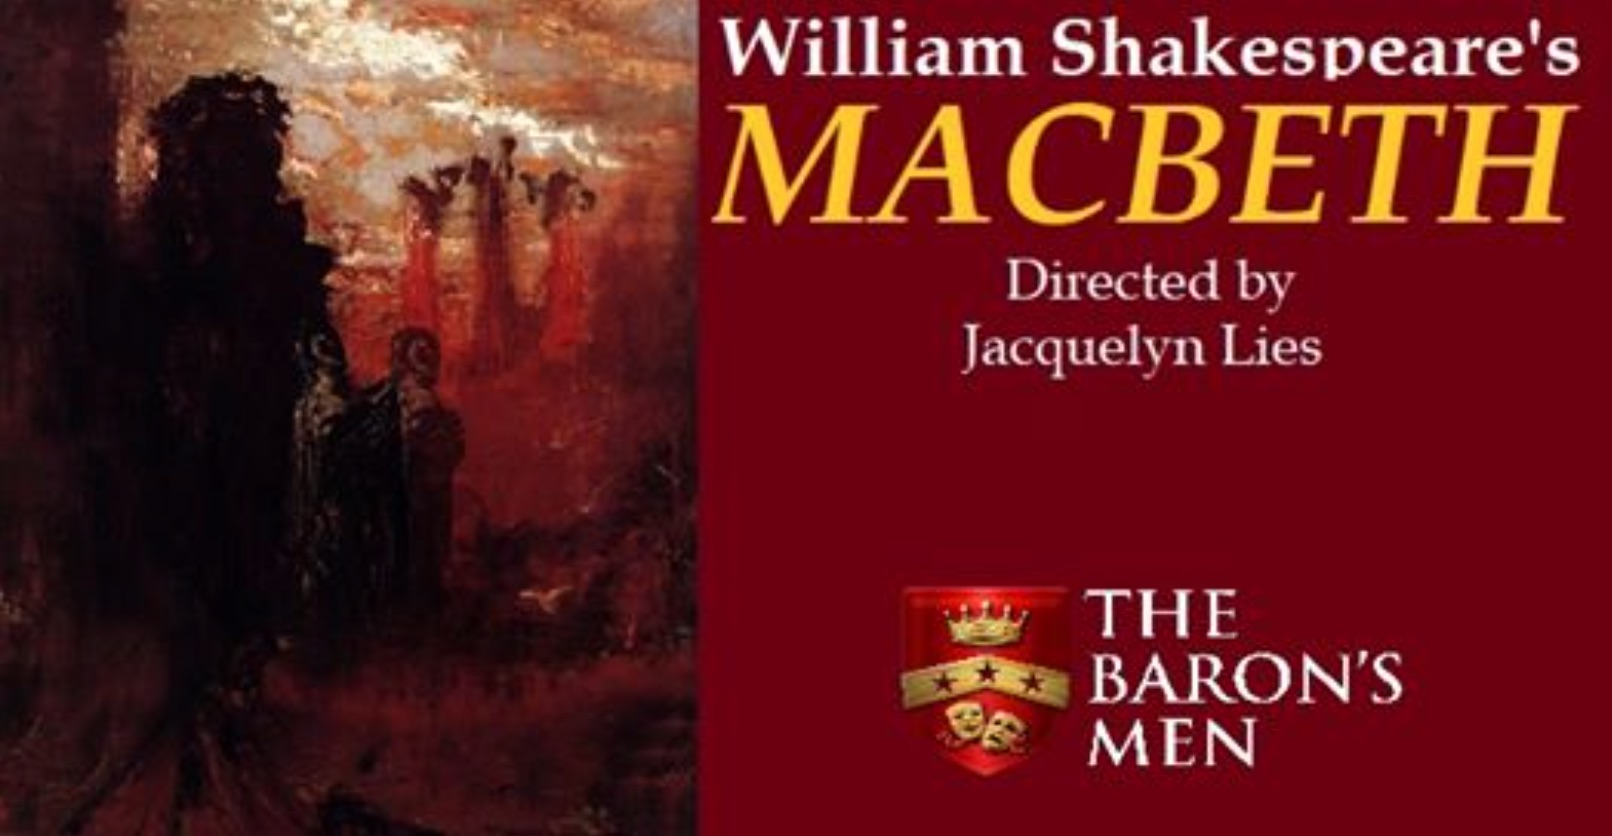 uploads/posters/macbeth_scr_barons_men_2019_jpg.jpg